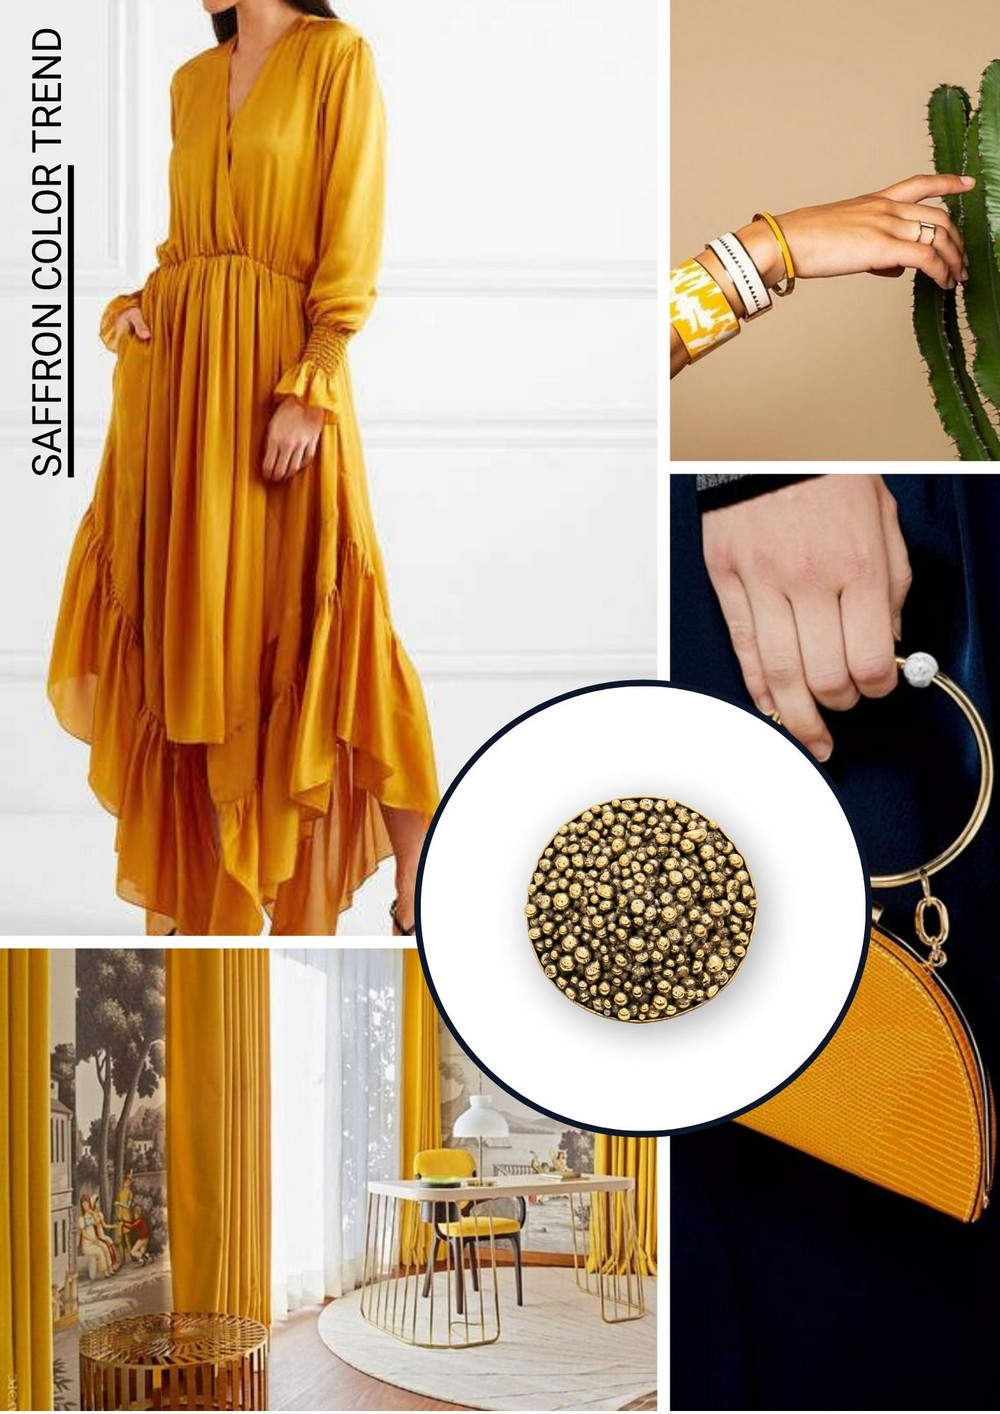 Spring Color Trends for 2020 in Both Interior Design and Fashion 3 spring color trends Spring Color Trends for 2020 in Both Interior Design and Fashion Spring Color Trends for 2020 in Both Interior Design and Fashion 3